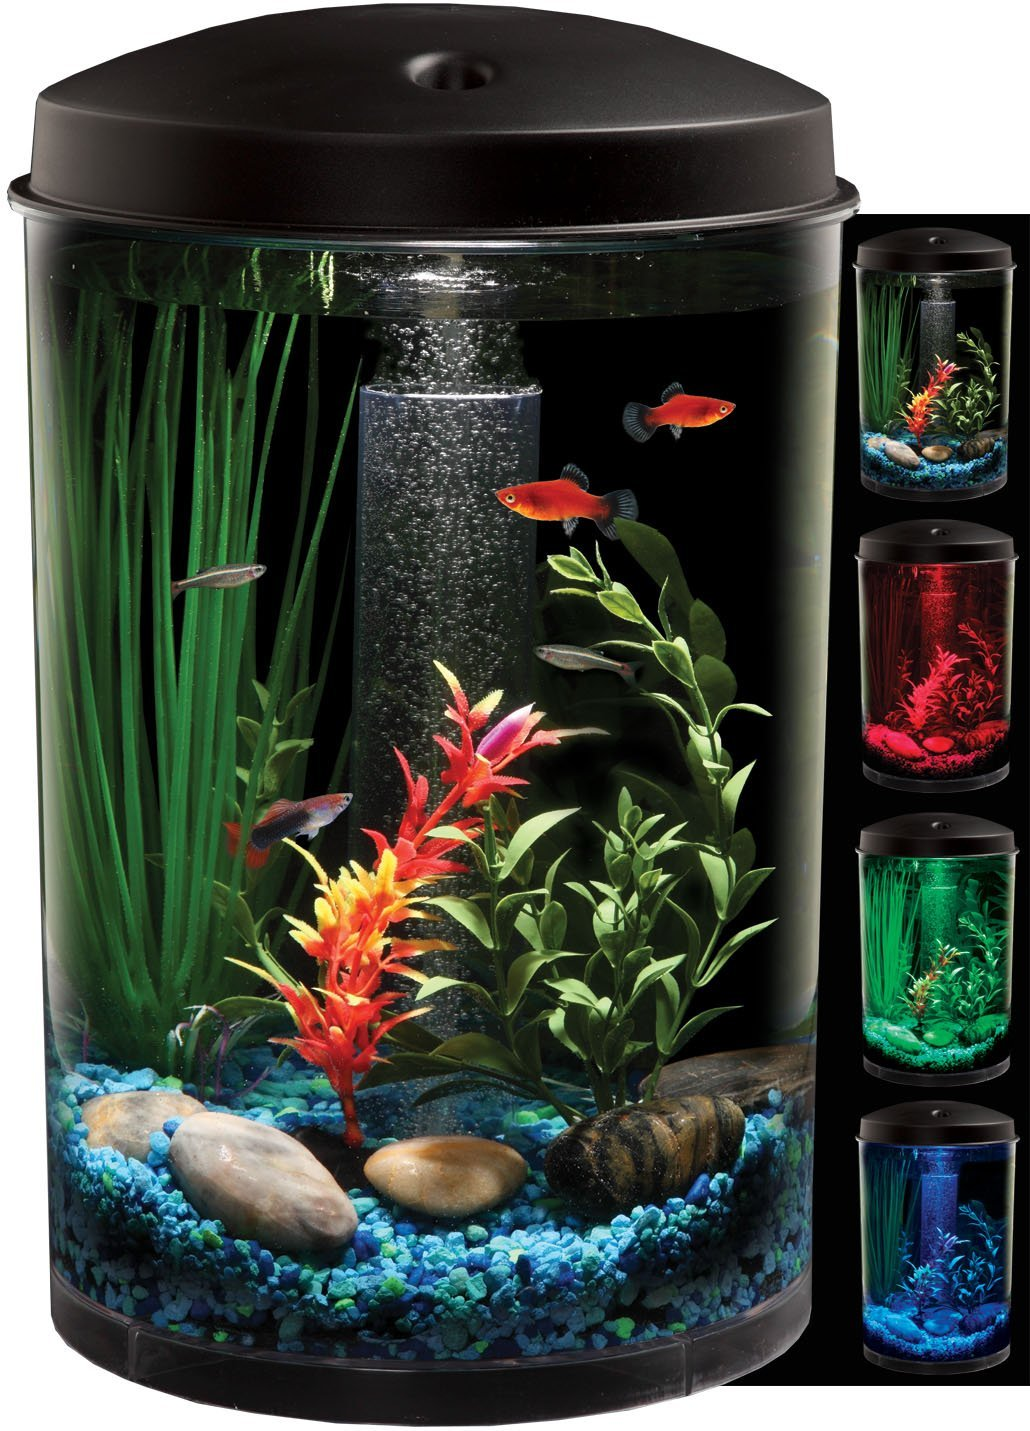 15 Creative Aquariums And Modern Fish Tanks Designs Part 5